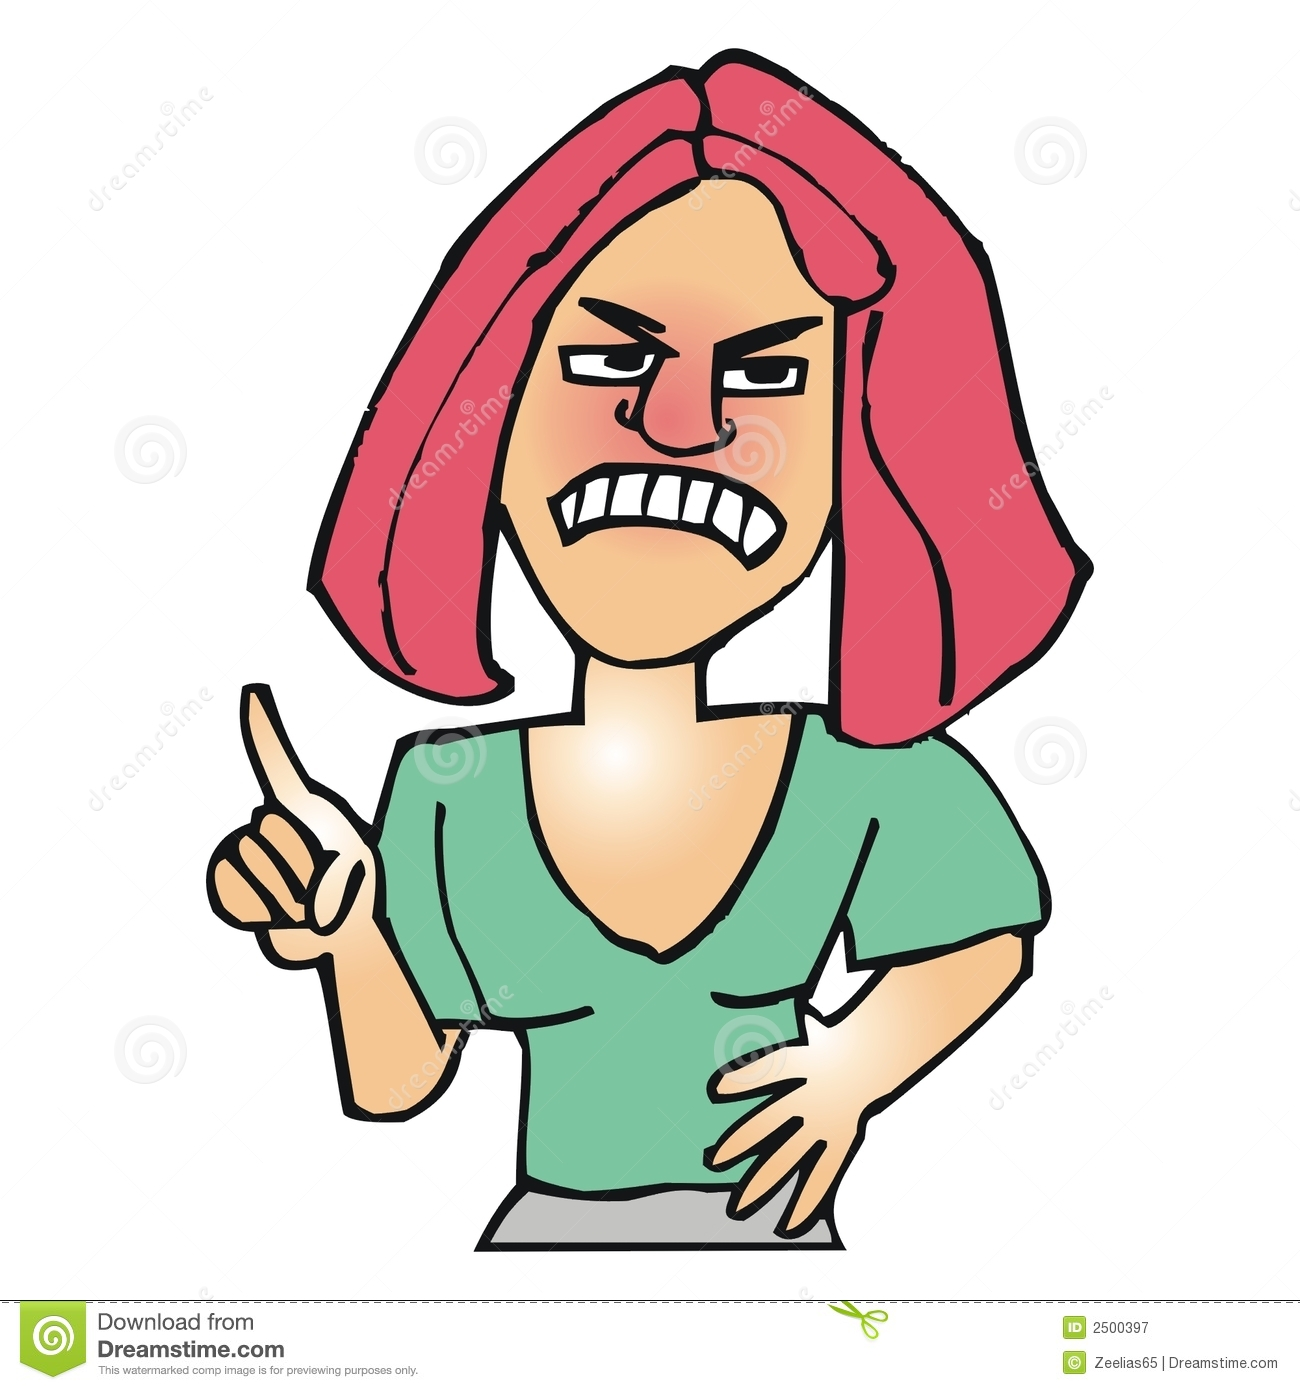 Anger clipart angry student. Person woman pencil and